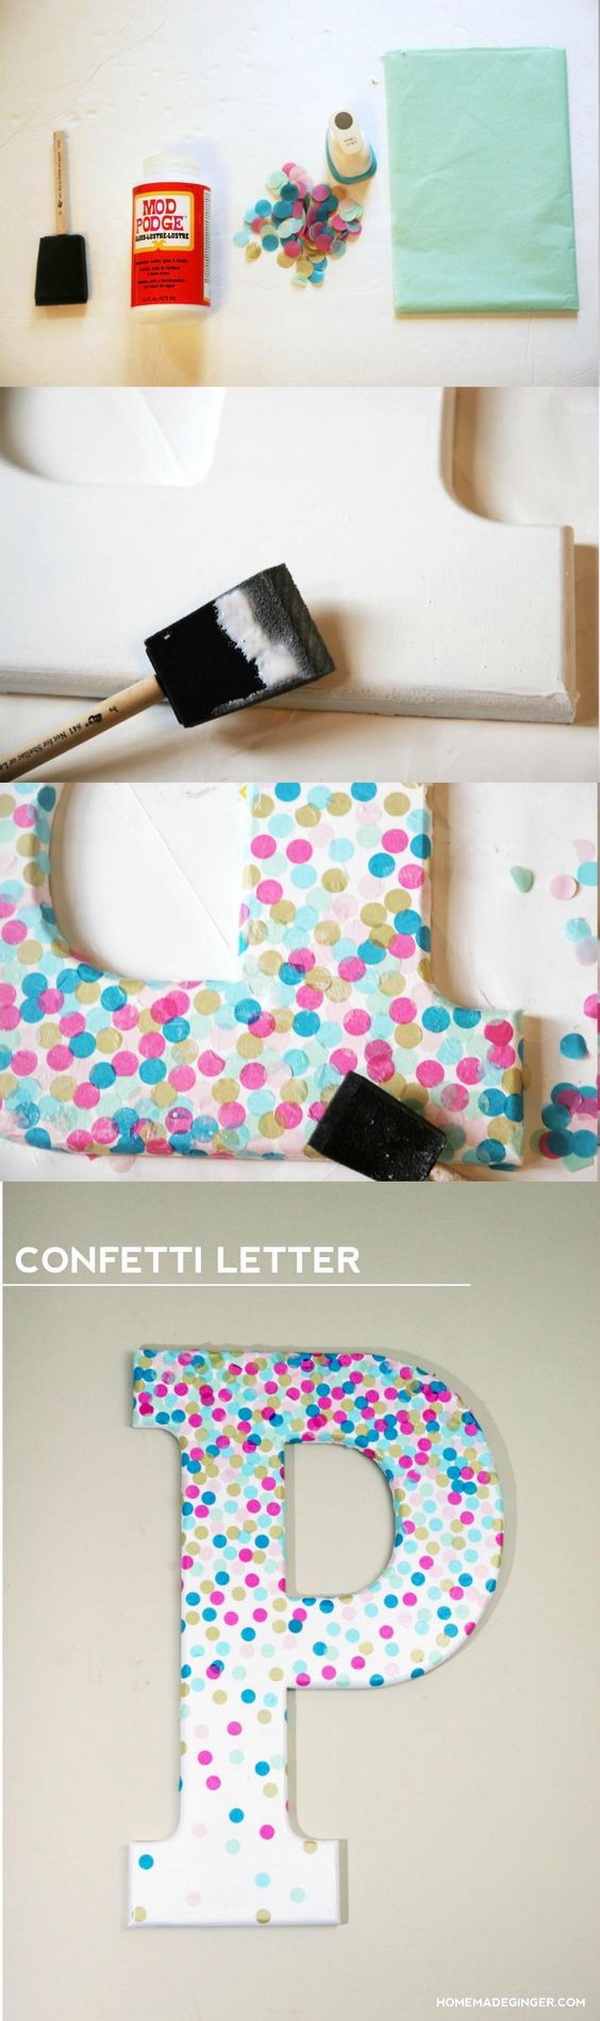 DIY Confetti Letter For Home Decor: Use a letter, Mod Podge, and real confetti to make cool decor project! Perfect for a kids' room or craft studio.